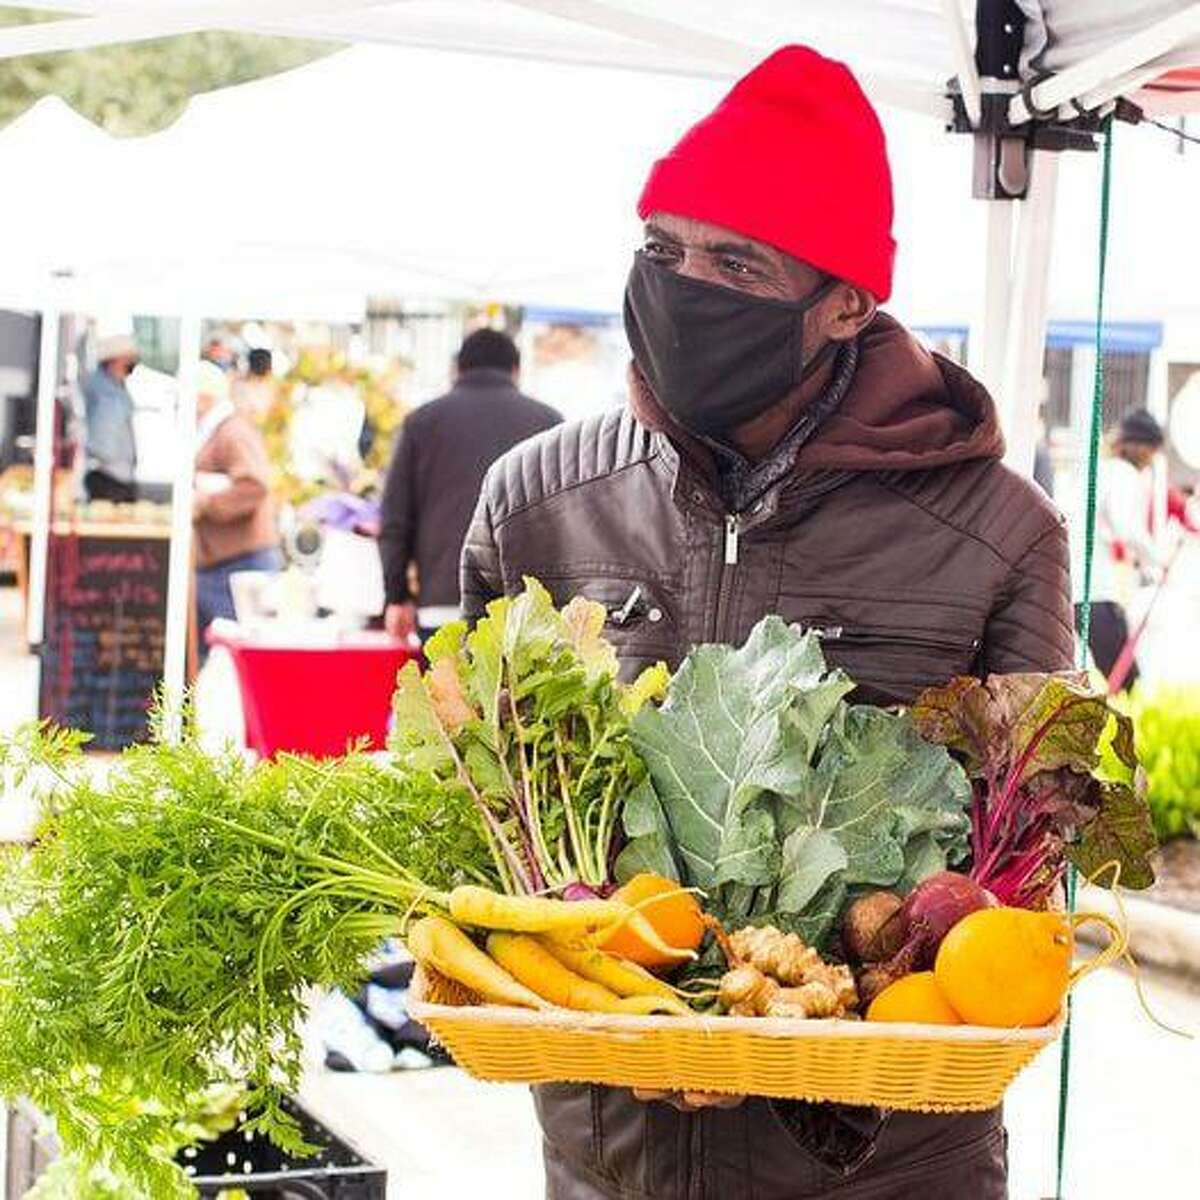 The Bay Area Farmers Market is held every Sunday at Baybrook Mall;